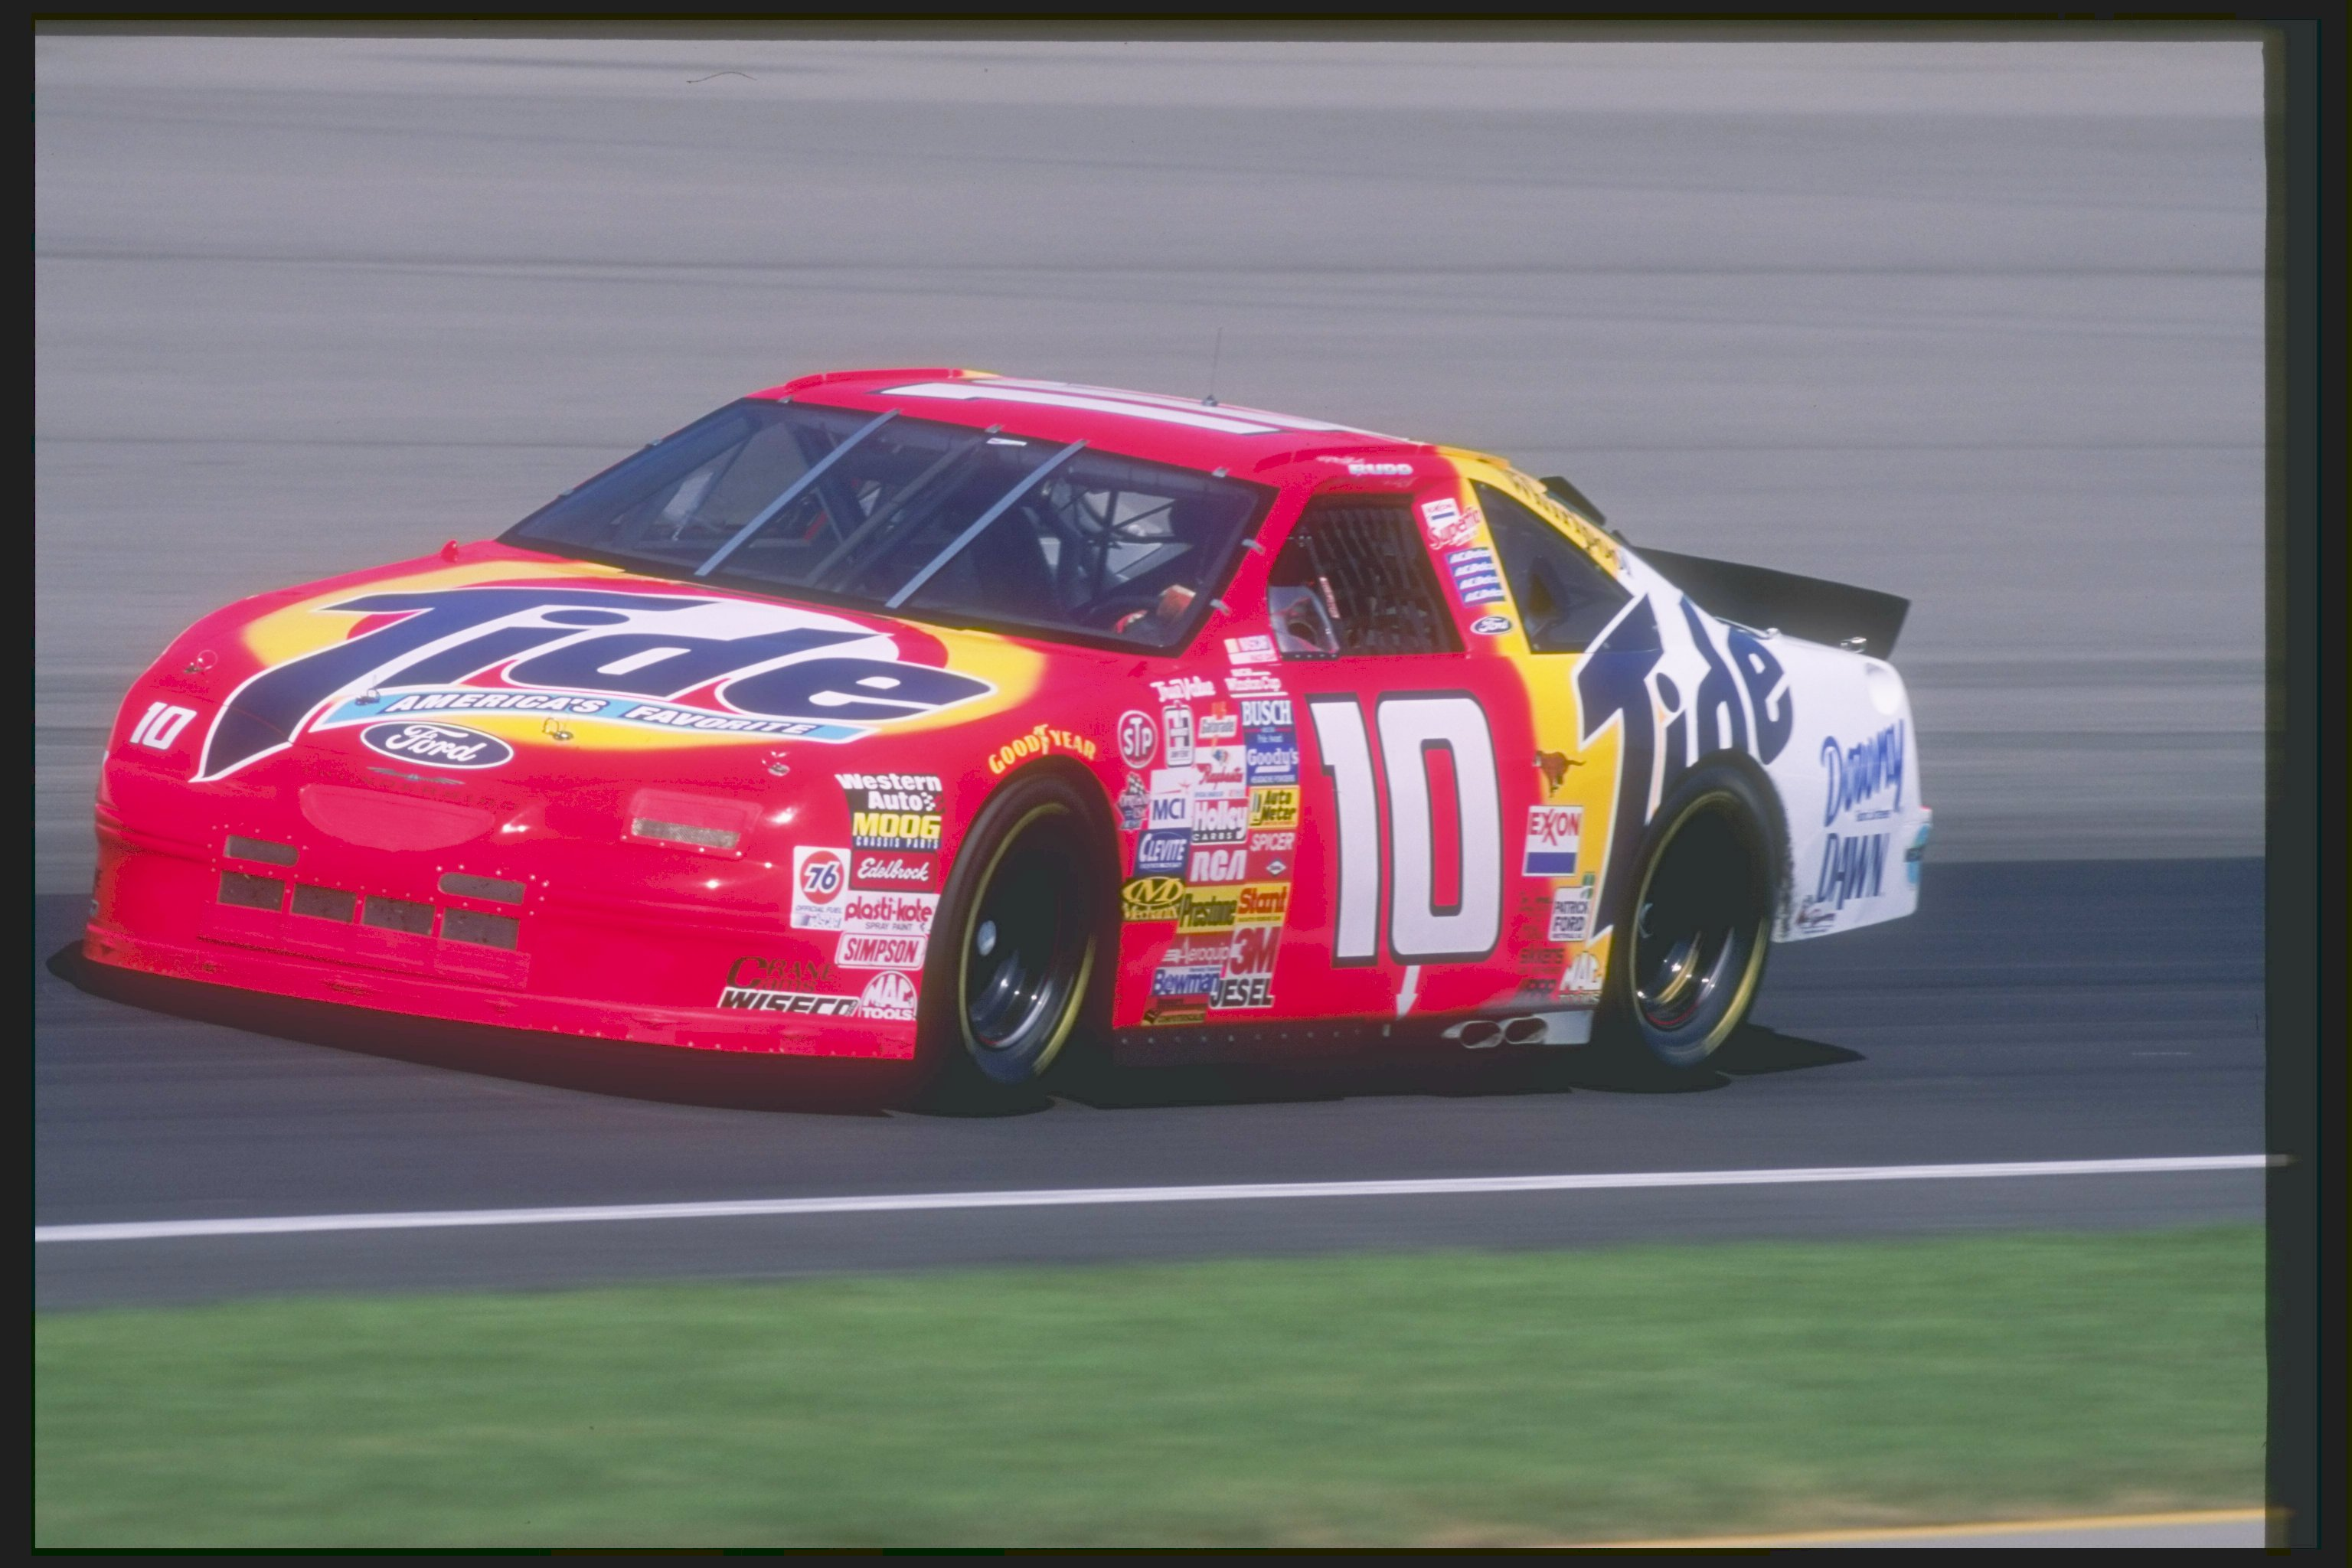 1997 Brickyard 400, Ricky Rudd's #10 Tide Ford Thunderbird